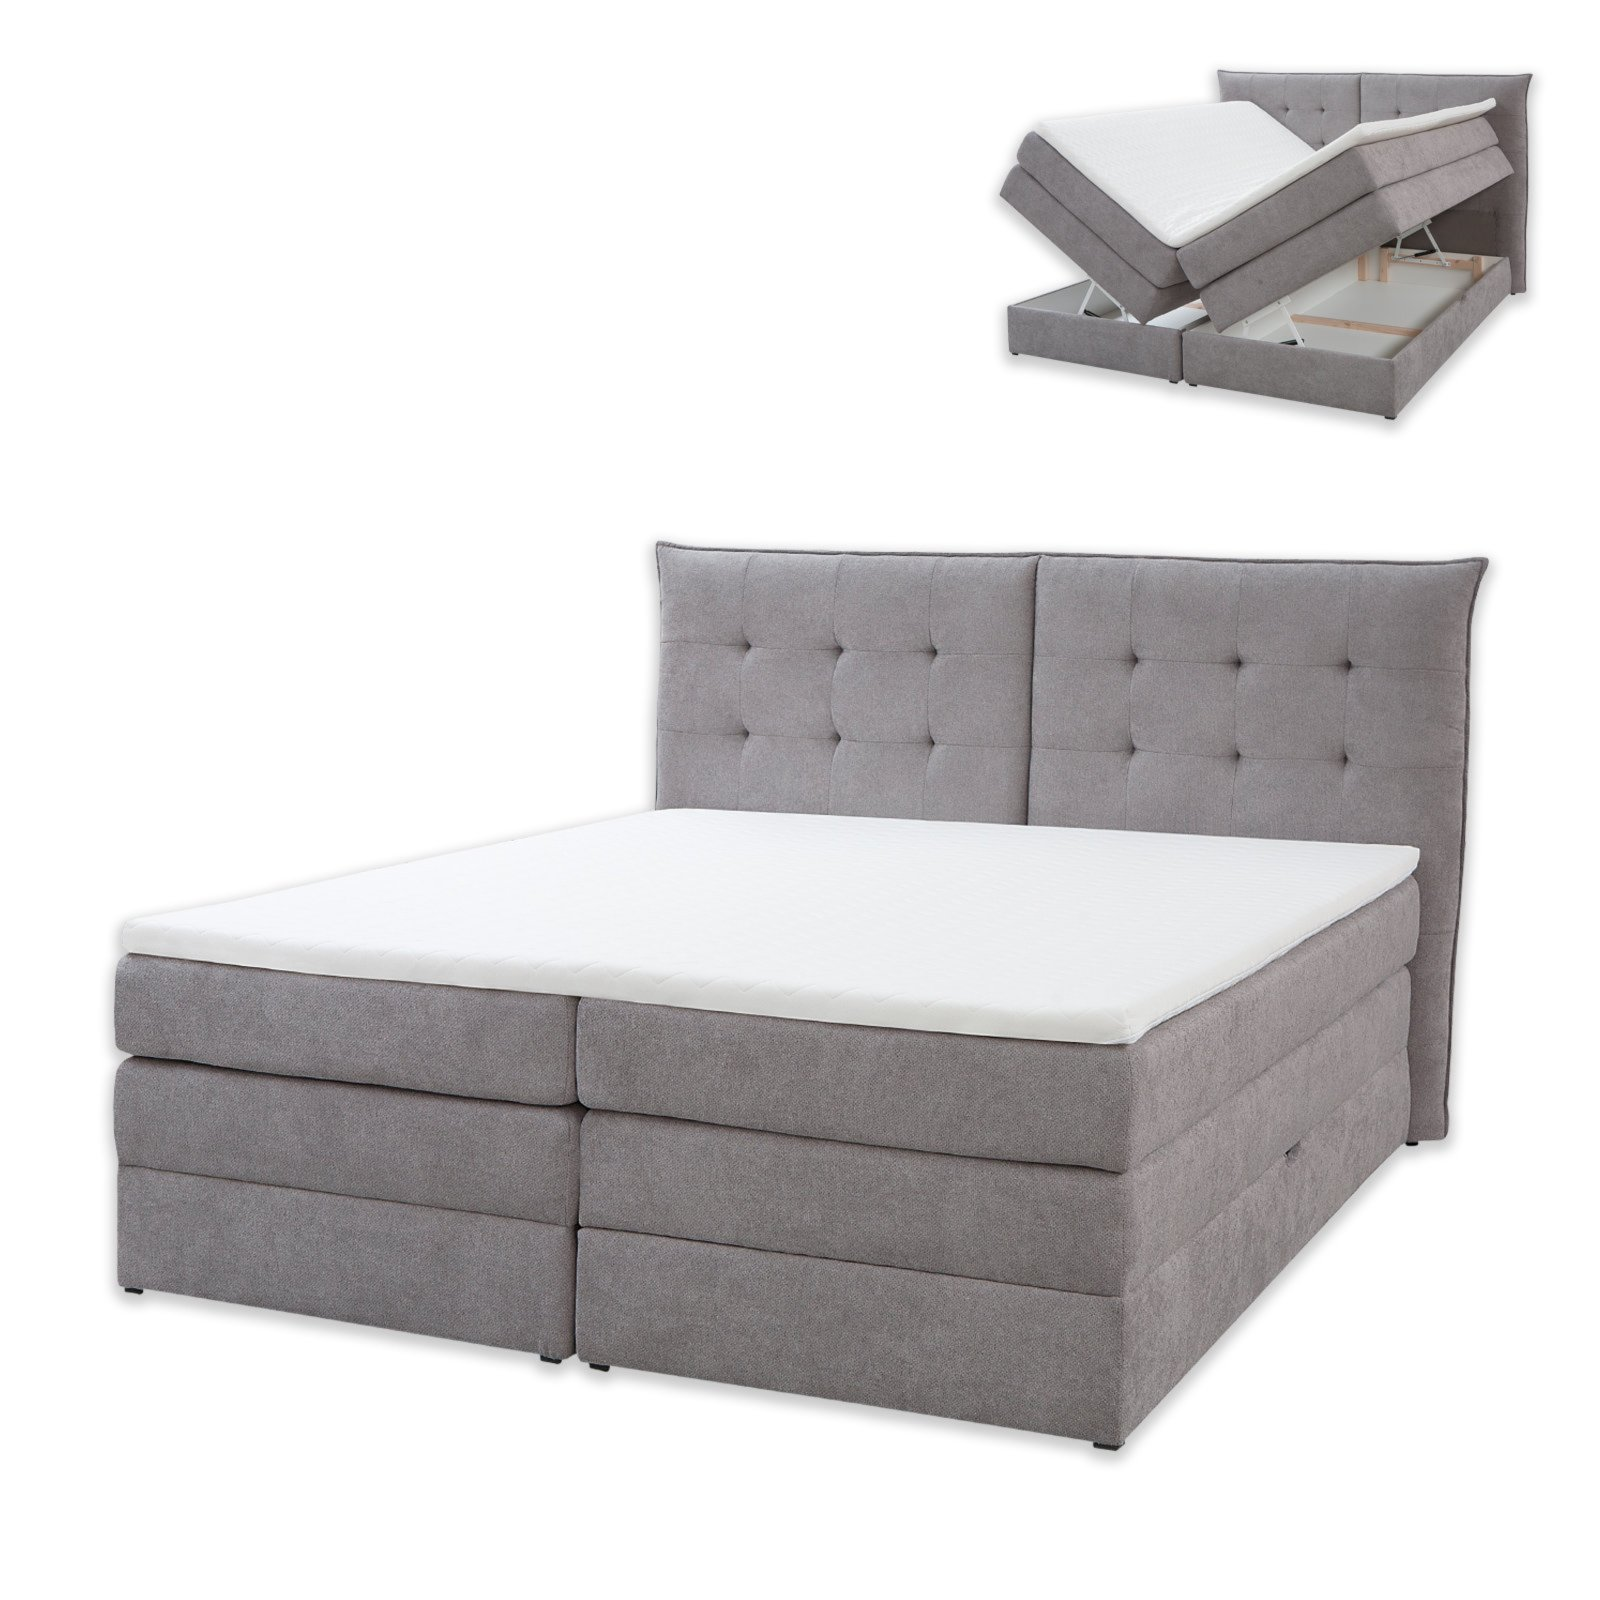 roller boxspringbett fendy grau taschenfederkern 180x200 cm ebay. Black Bedroom Furniture Sets. Home Design Ideas